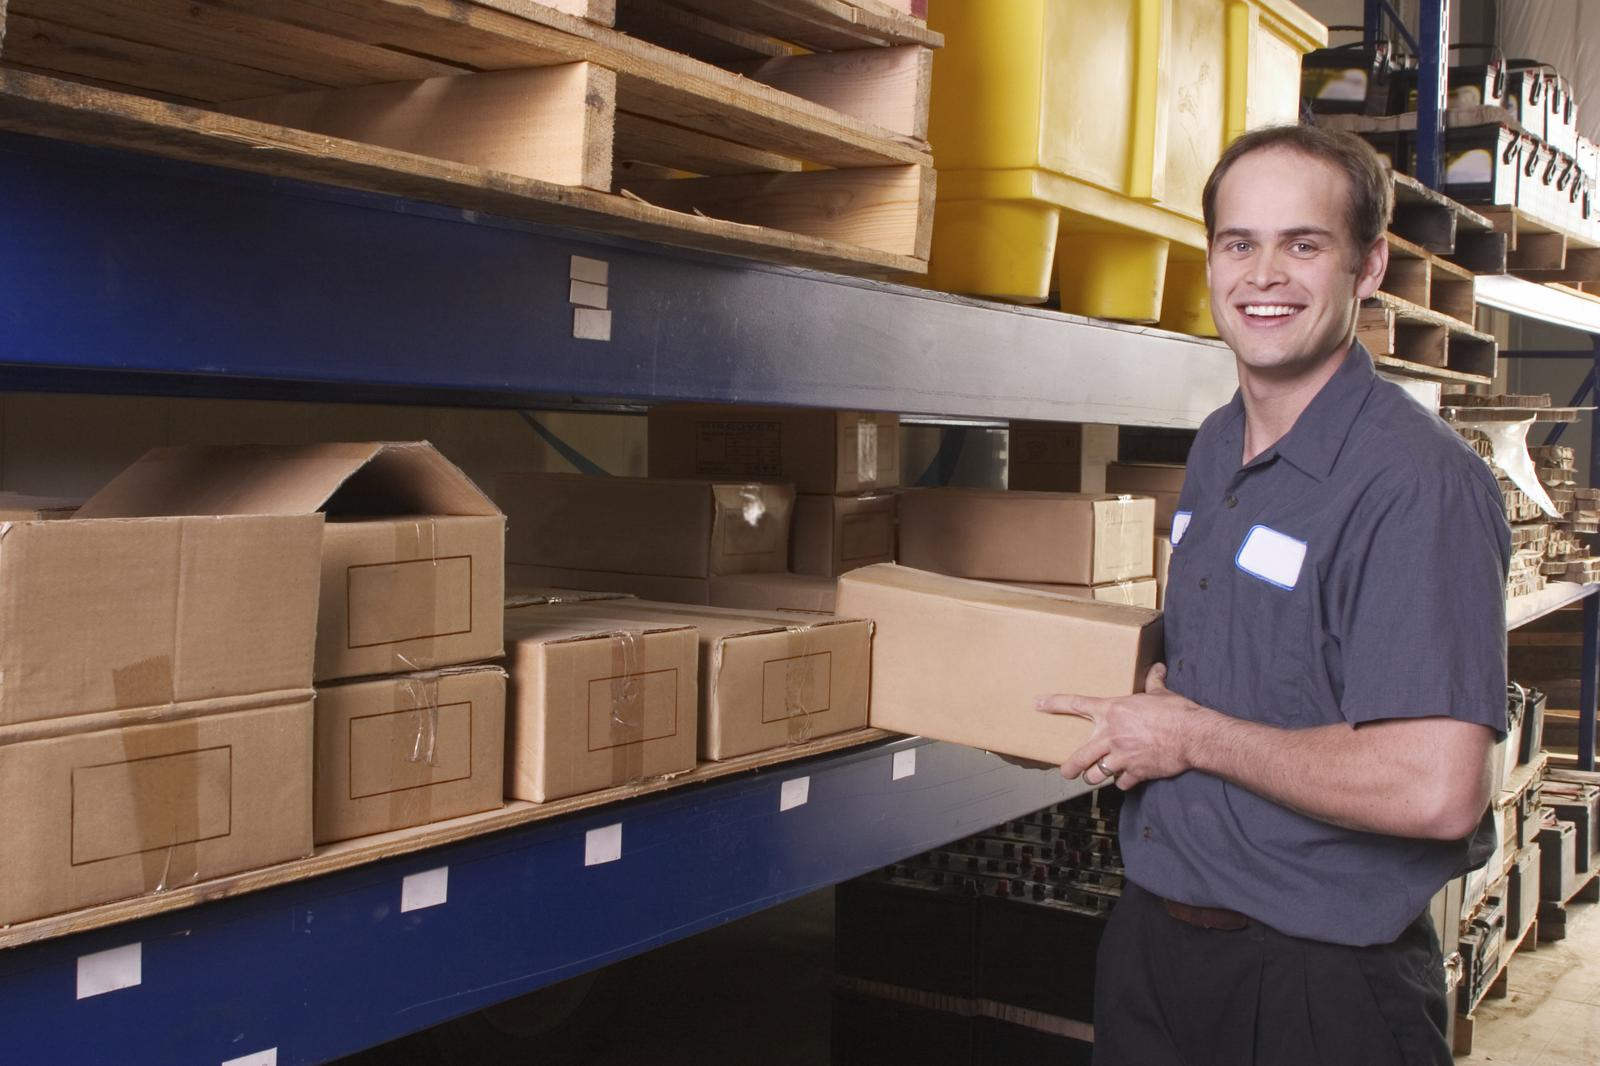 Smiling service worker in standing next to shelves of packages